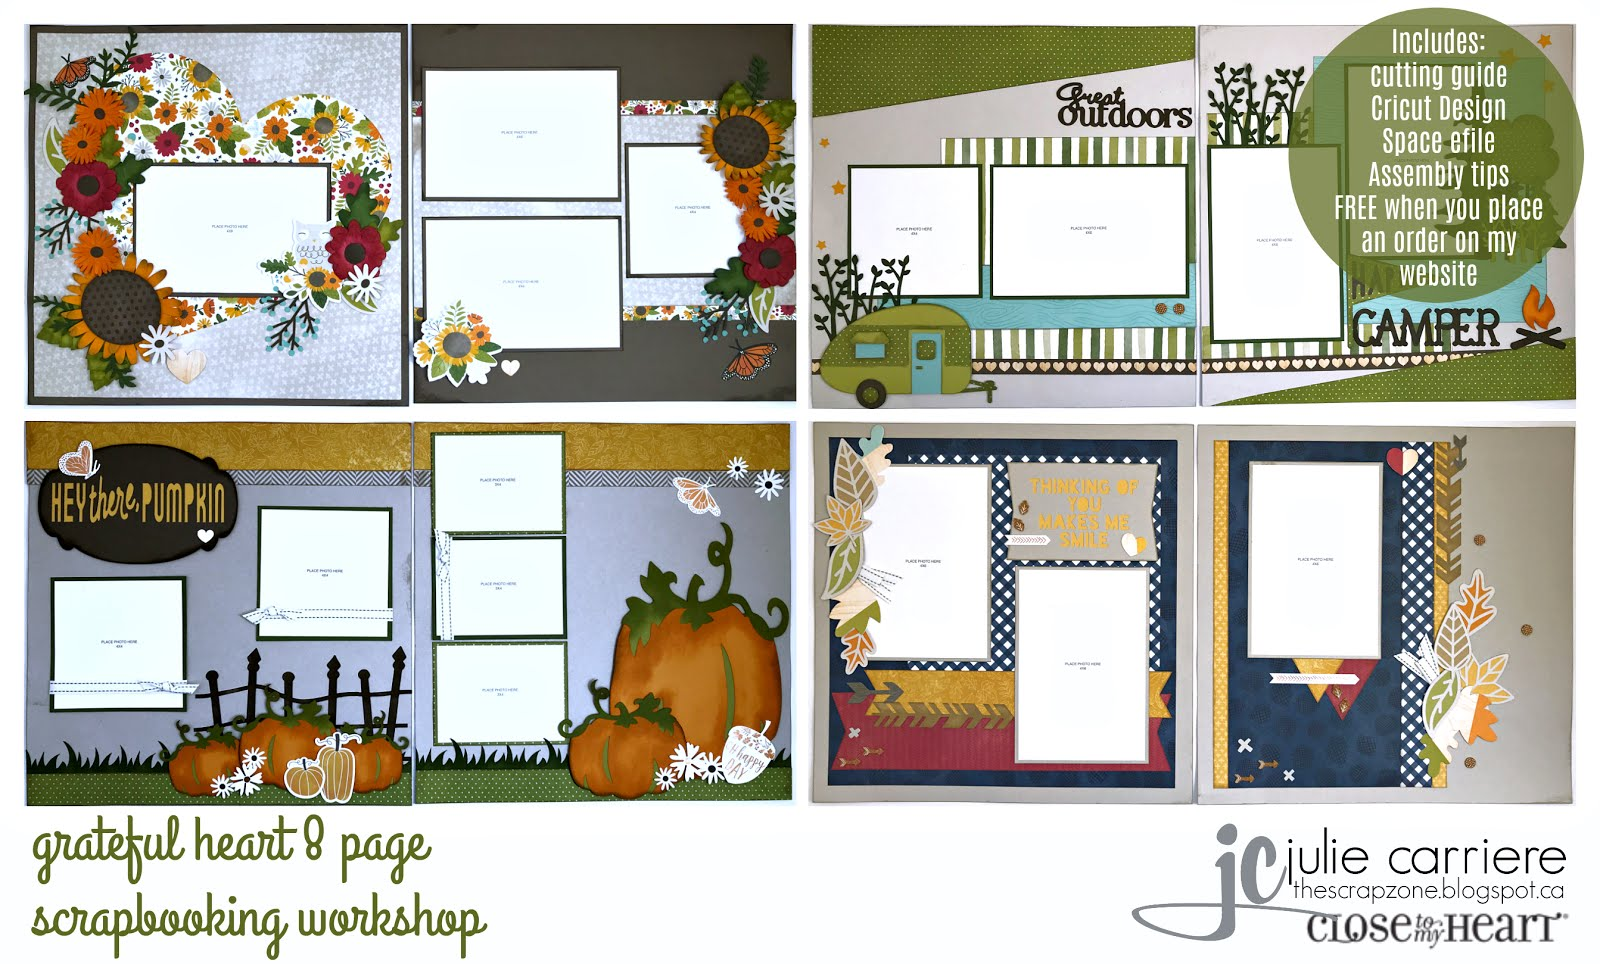 Grateful Heart Scrapbooking Assembly Guide